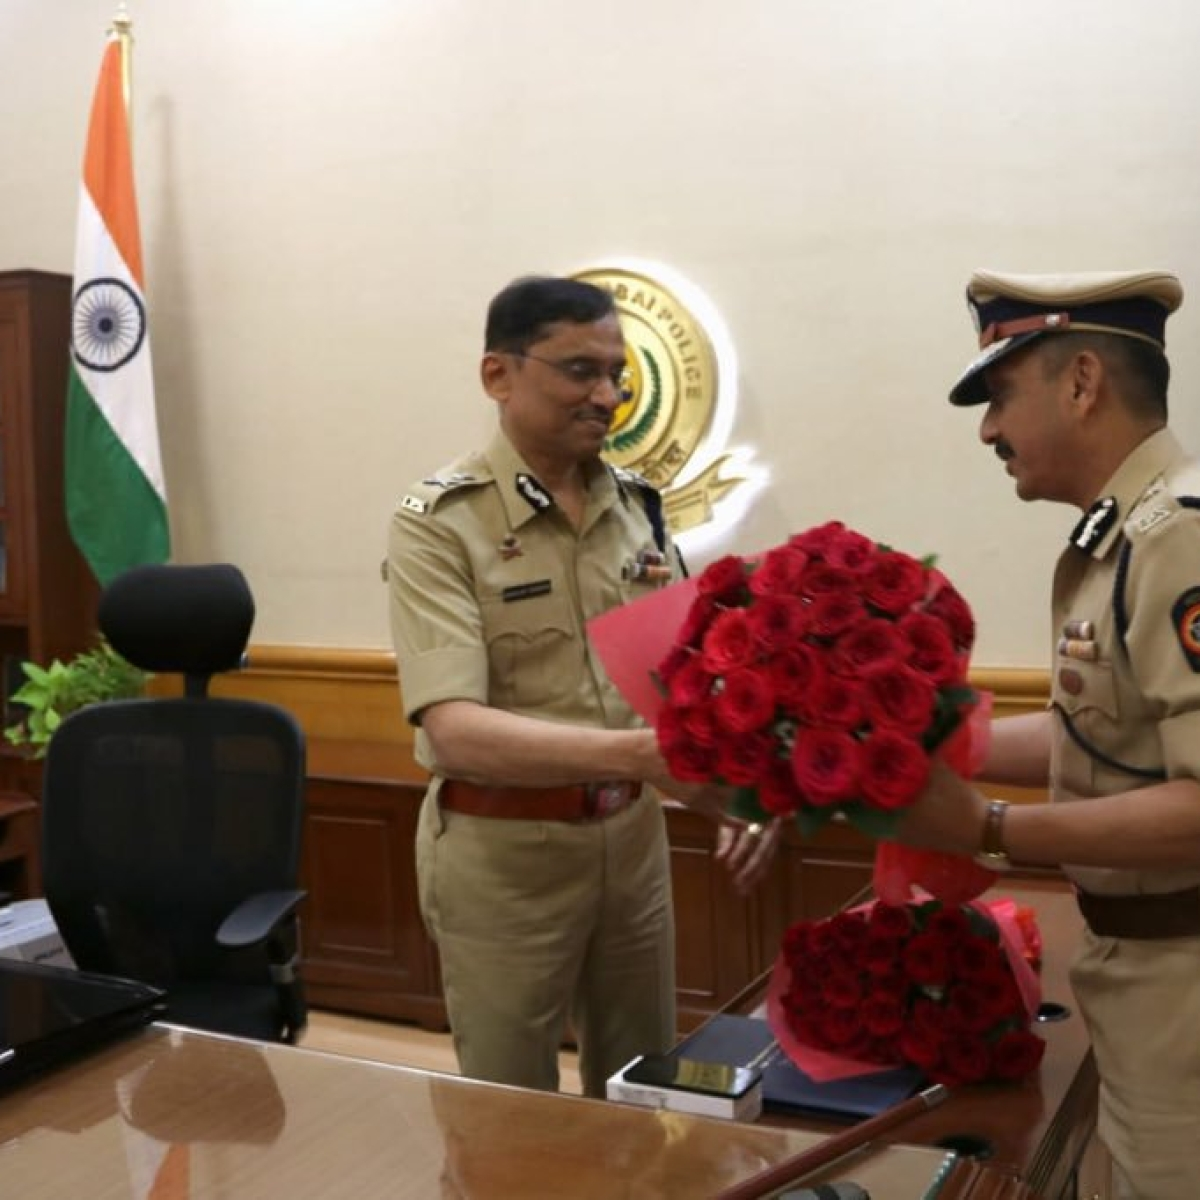 Mumbai police chief Sanjay Barve gets 3 months' extension ahead of Assembly polls